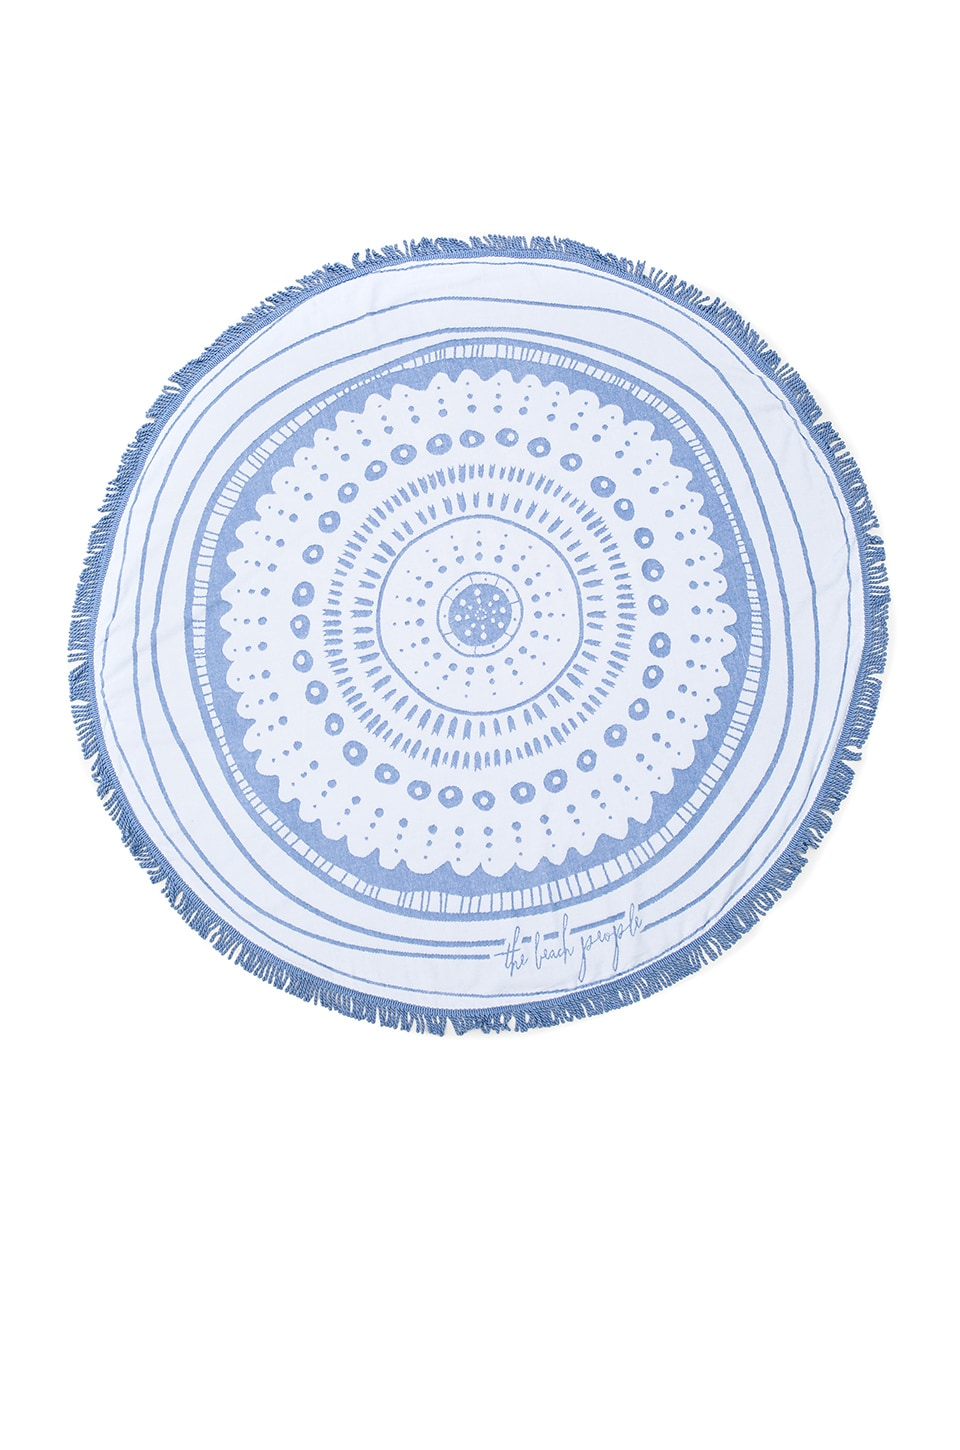 The Wategos Round Towel